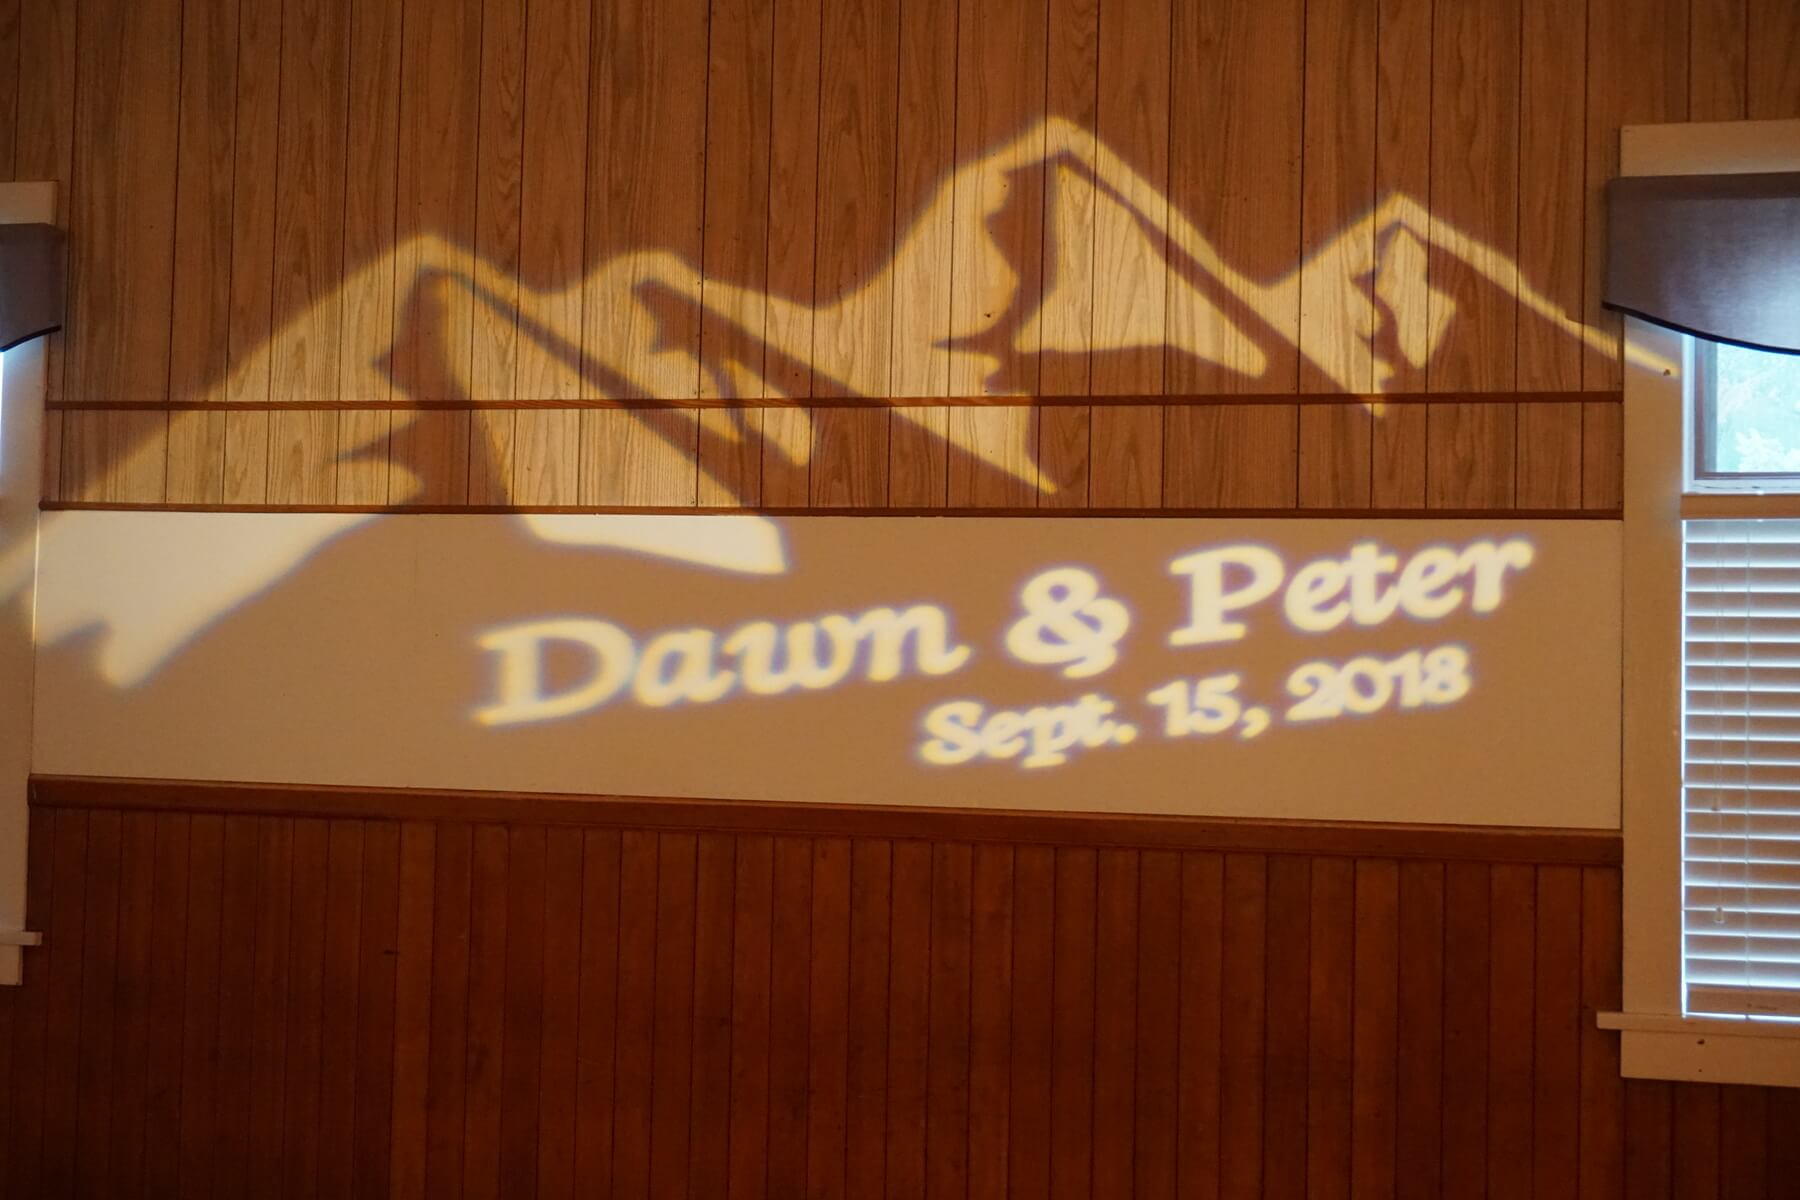 Dawn and Peter's wedding gobo